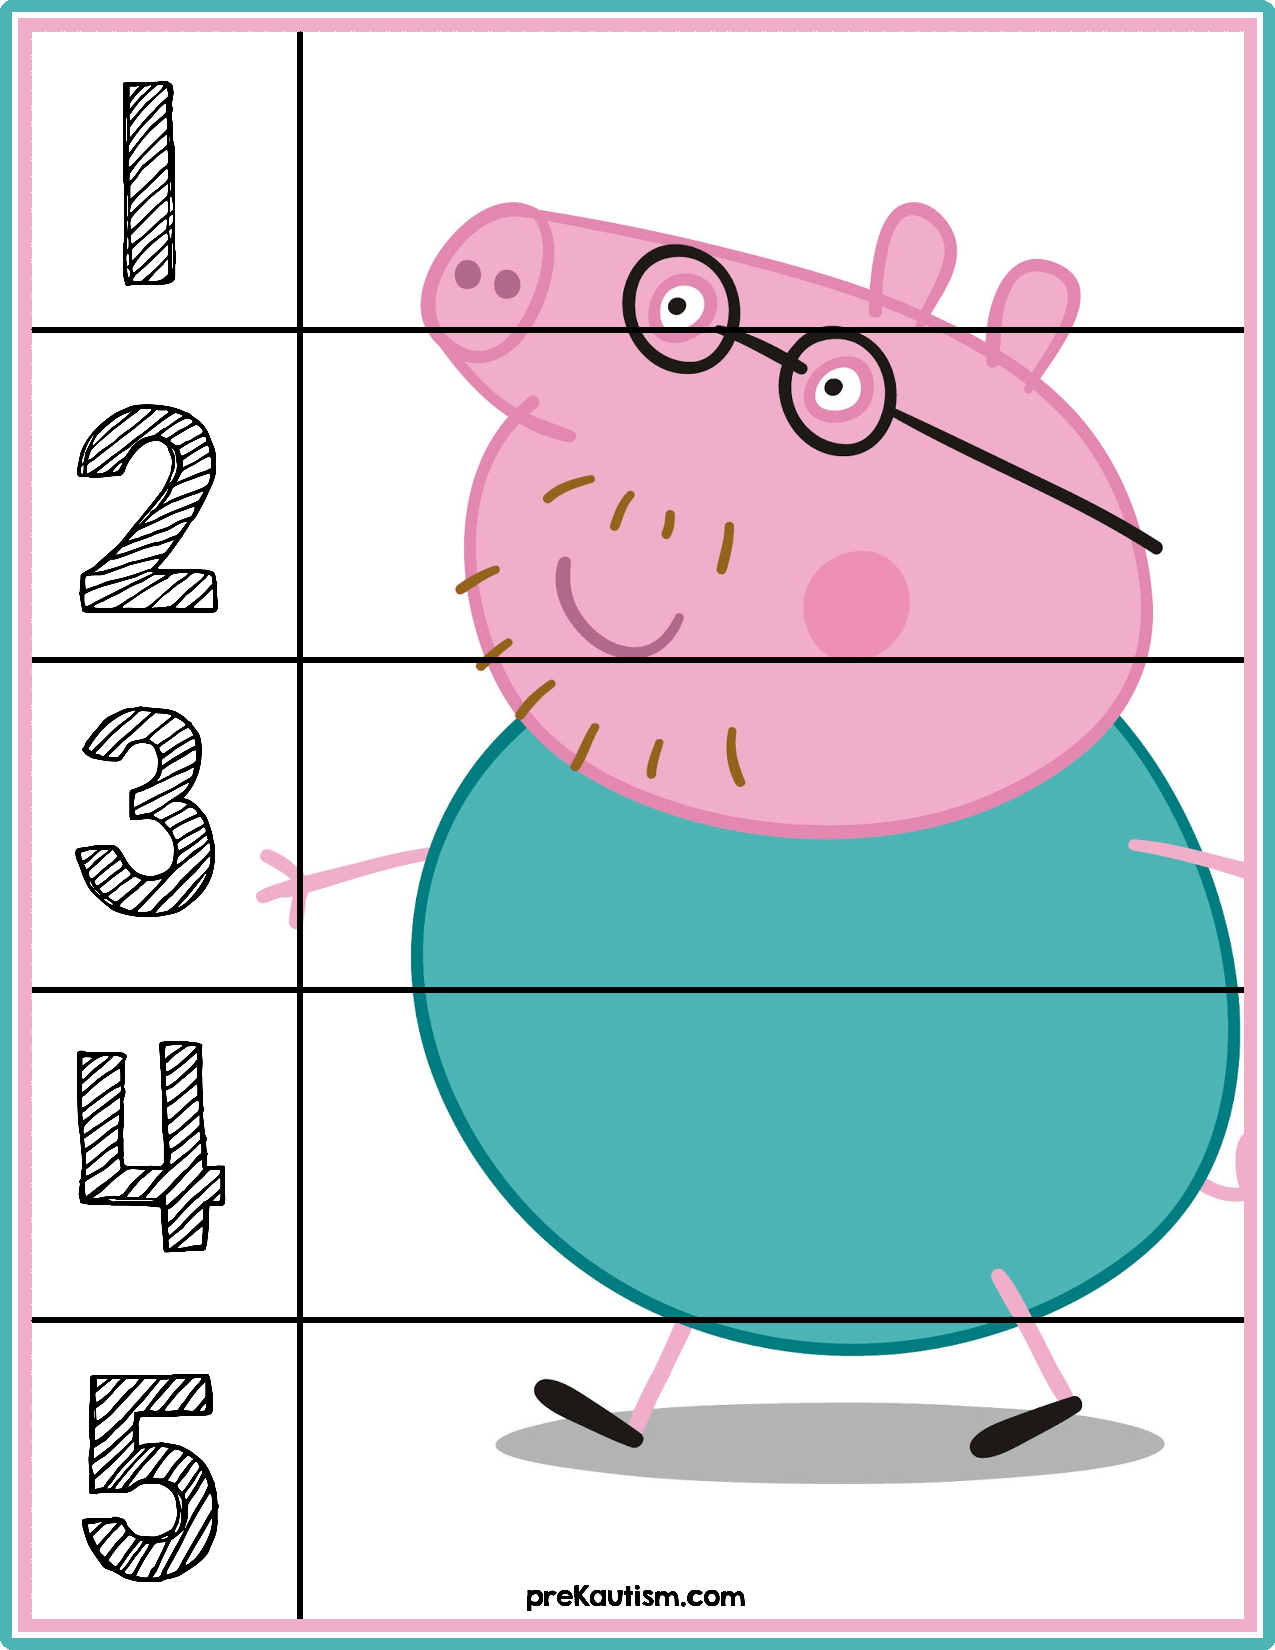 Free Educational Materials | Pinterest | Number puzzles, Learning ...